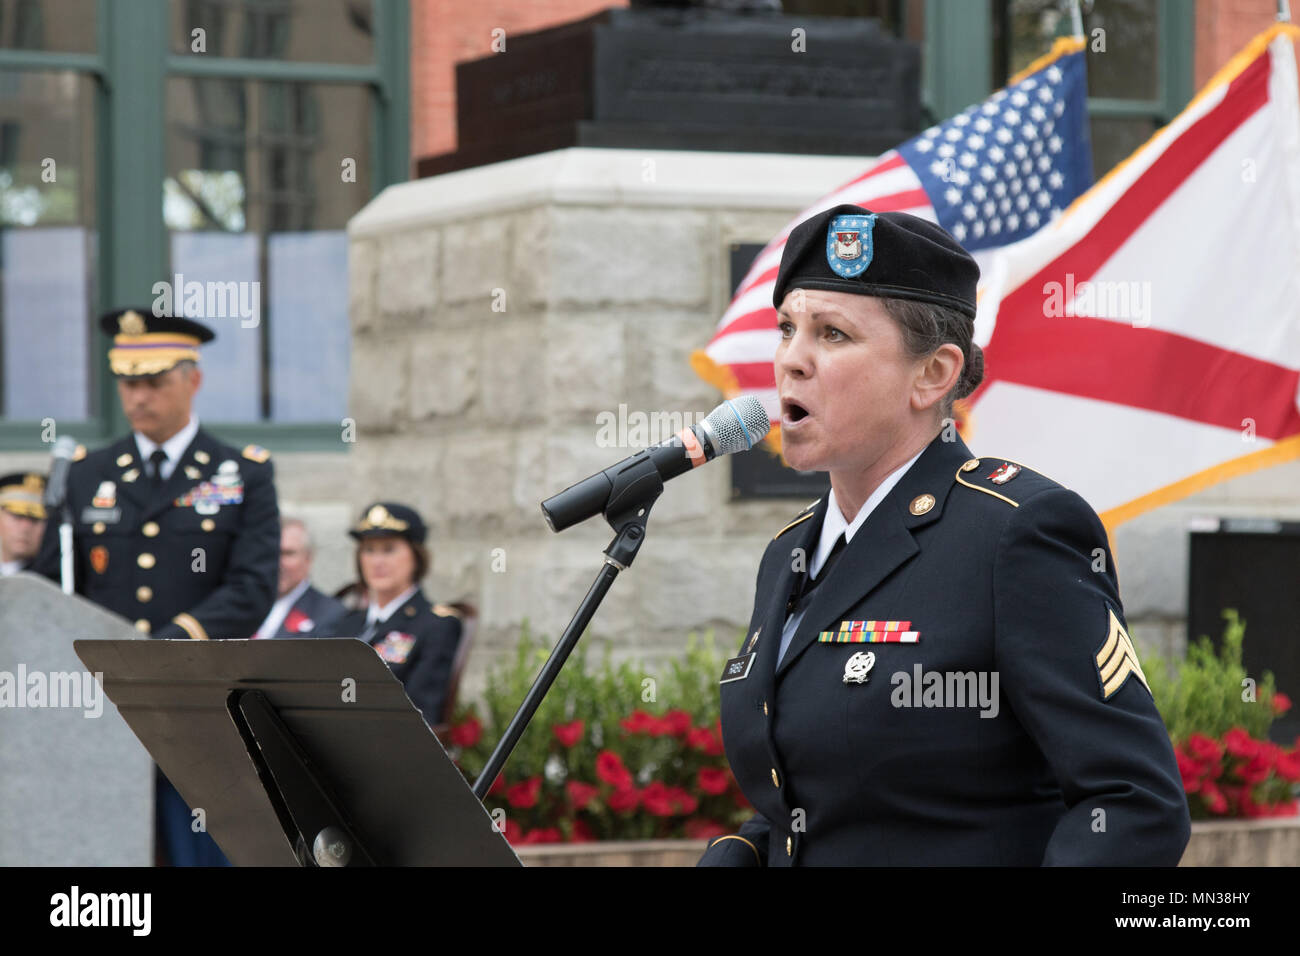 The Alabama National Guard's 151st Army Band performs at the dedication of the Rainbow Soldier ceremony, memorializing the Alabama National Guard's 167th Infantry Regiment's role in World War I, in Montgomery, Alabama, Aug. 28, 2017. (Photo by Army Sgt. William Frye.) - Stock Image